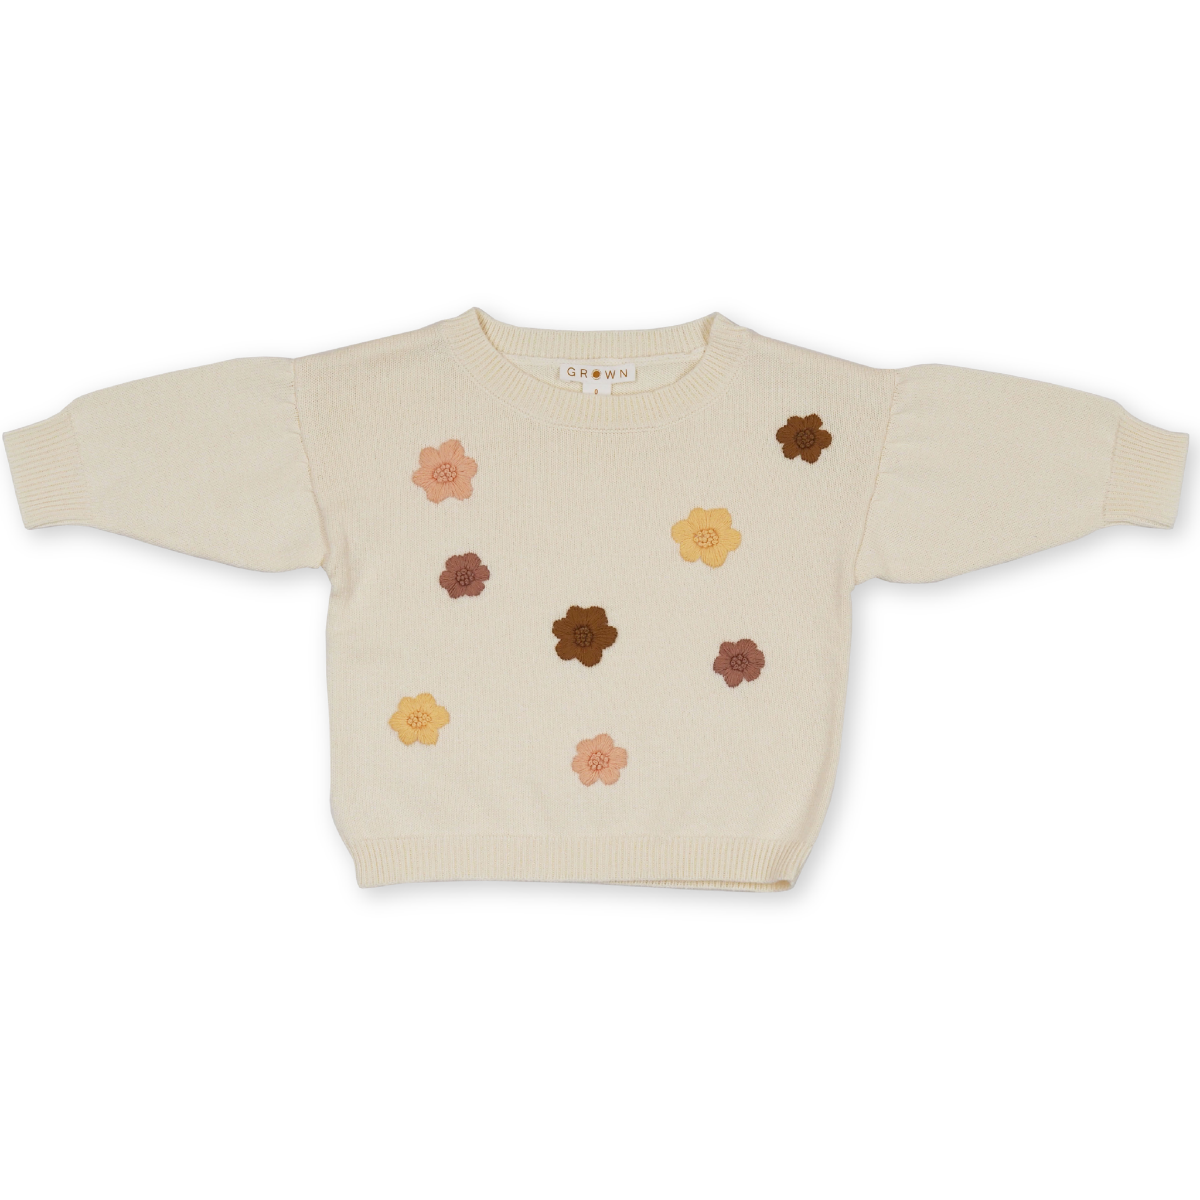 US stockist of Grown Clothing's Flower Power Sweater.  Made from 100% organic cotton in milk with hand embroidered flowers on the front in brown, yellow and blush.